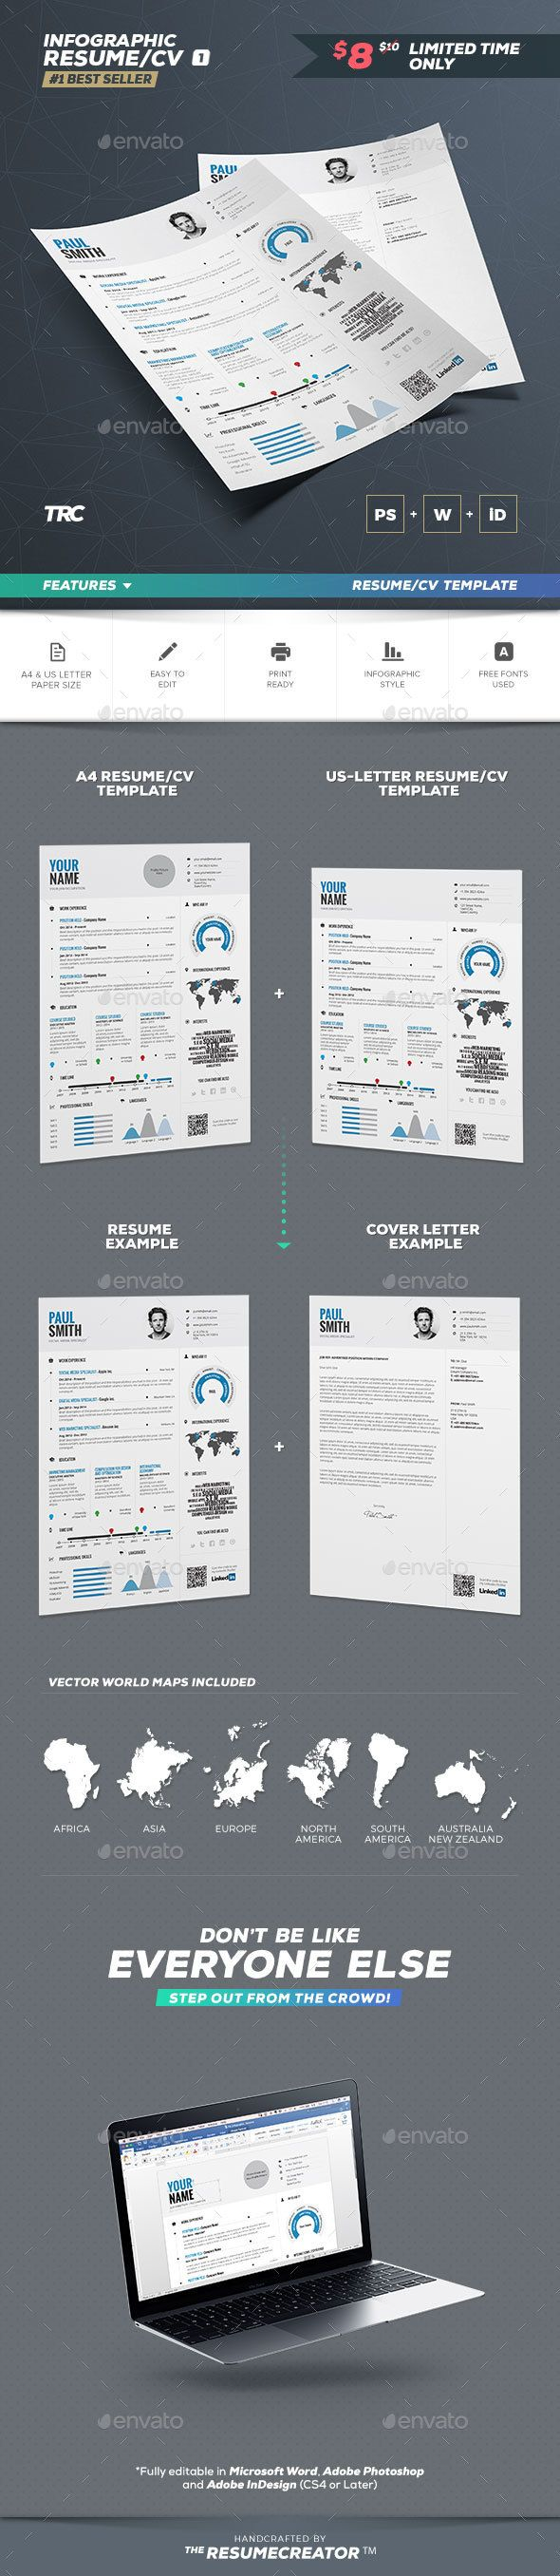 Infographic Resume Vol.1